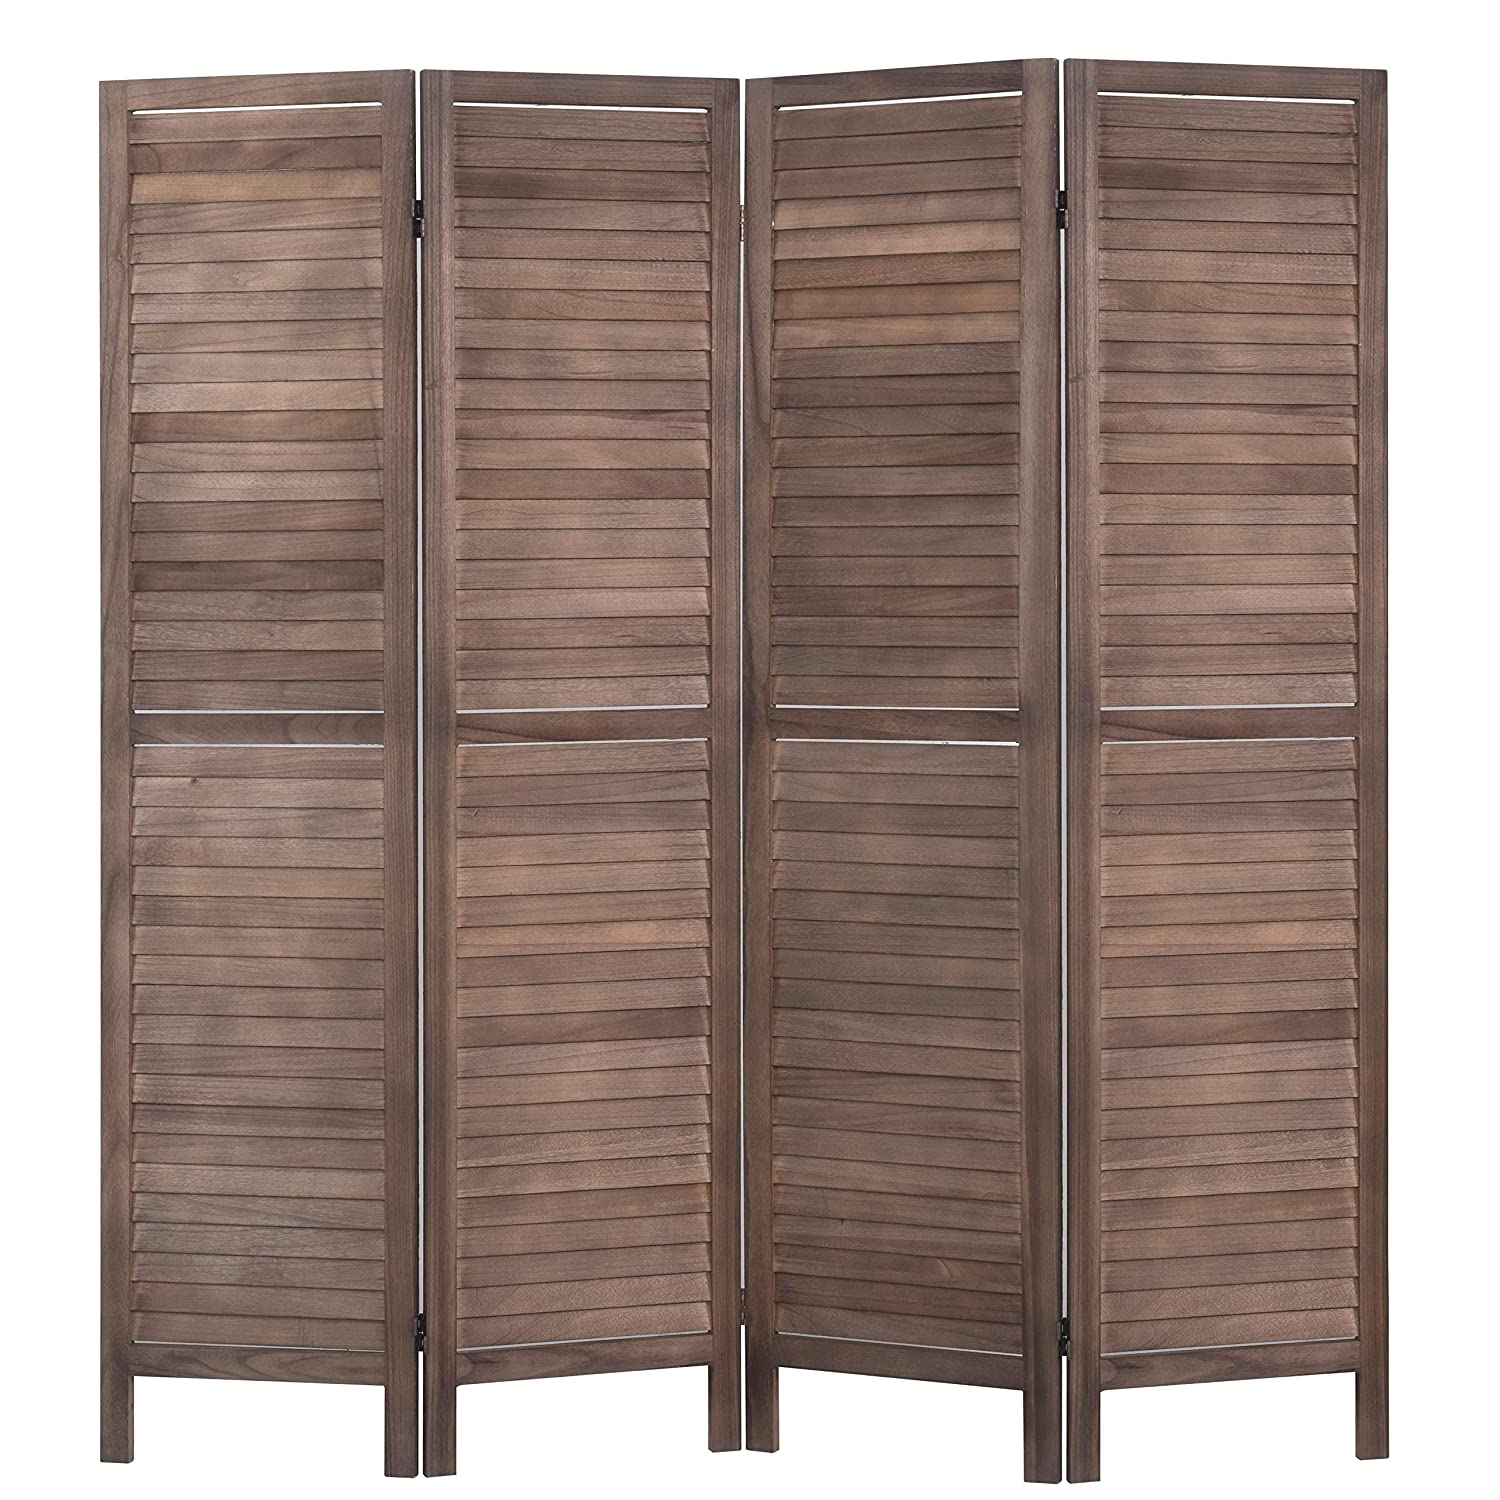 RHF 3 Panel 5.6 Ft Tall Wood Room Divider, Wood Folding Room Divider Screens, Panel Divider&Room Dividers, Room Dividers and Folding Privacy Screens (3 Panel, Brown) Rose Home Fashion